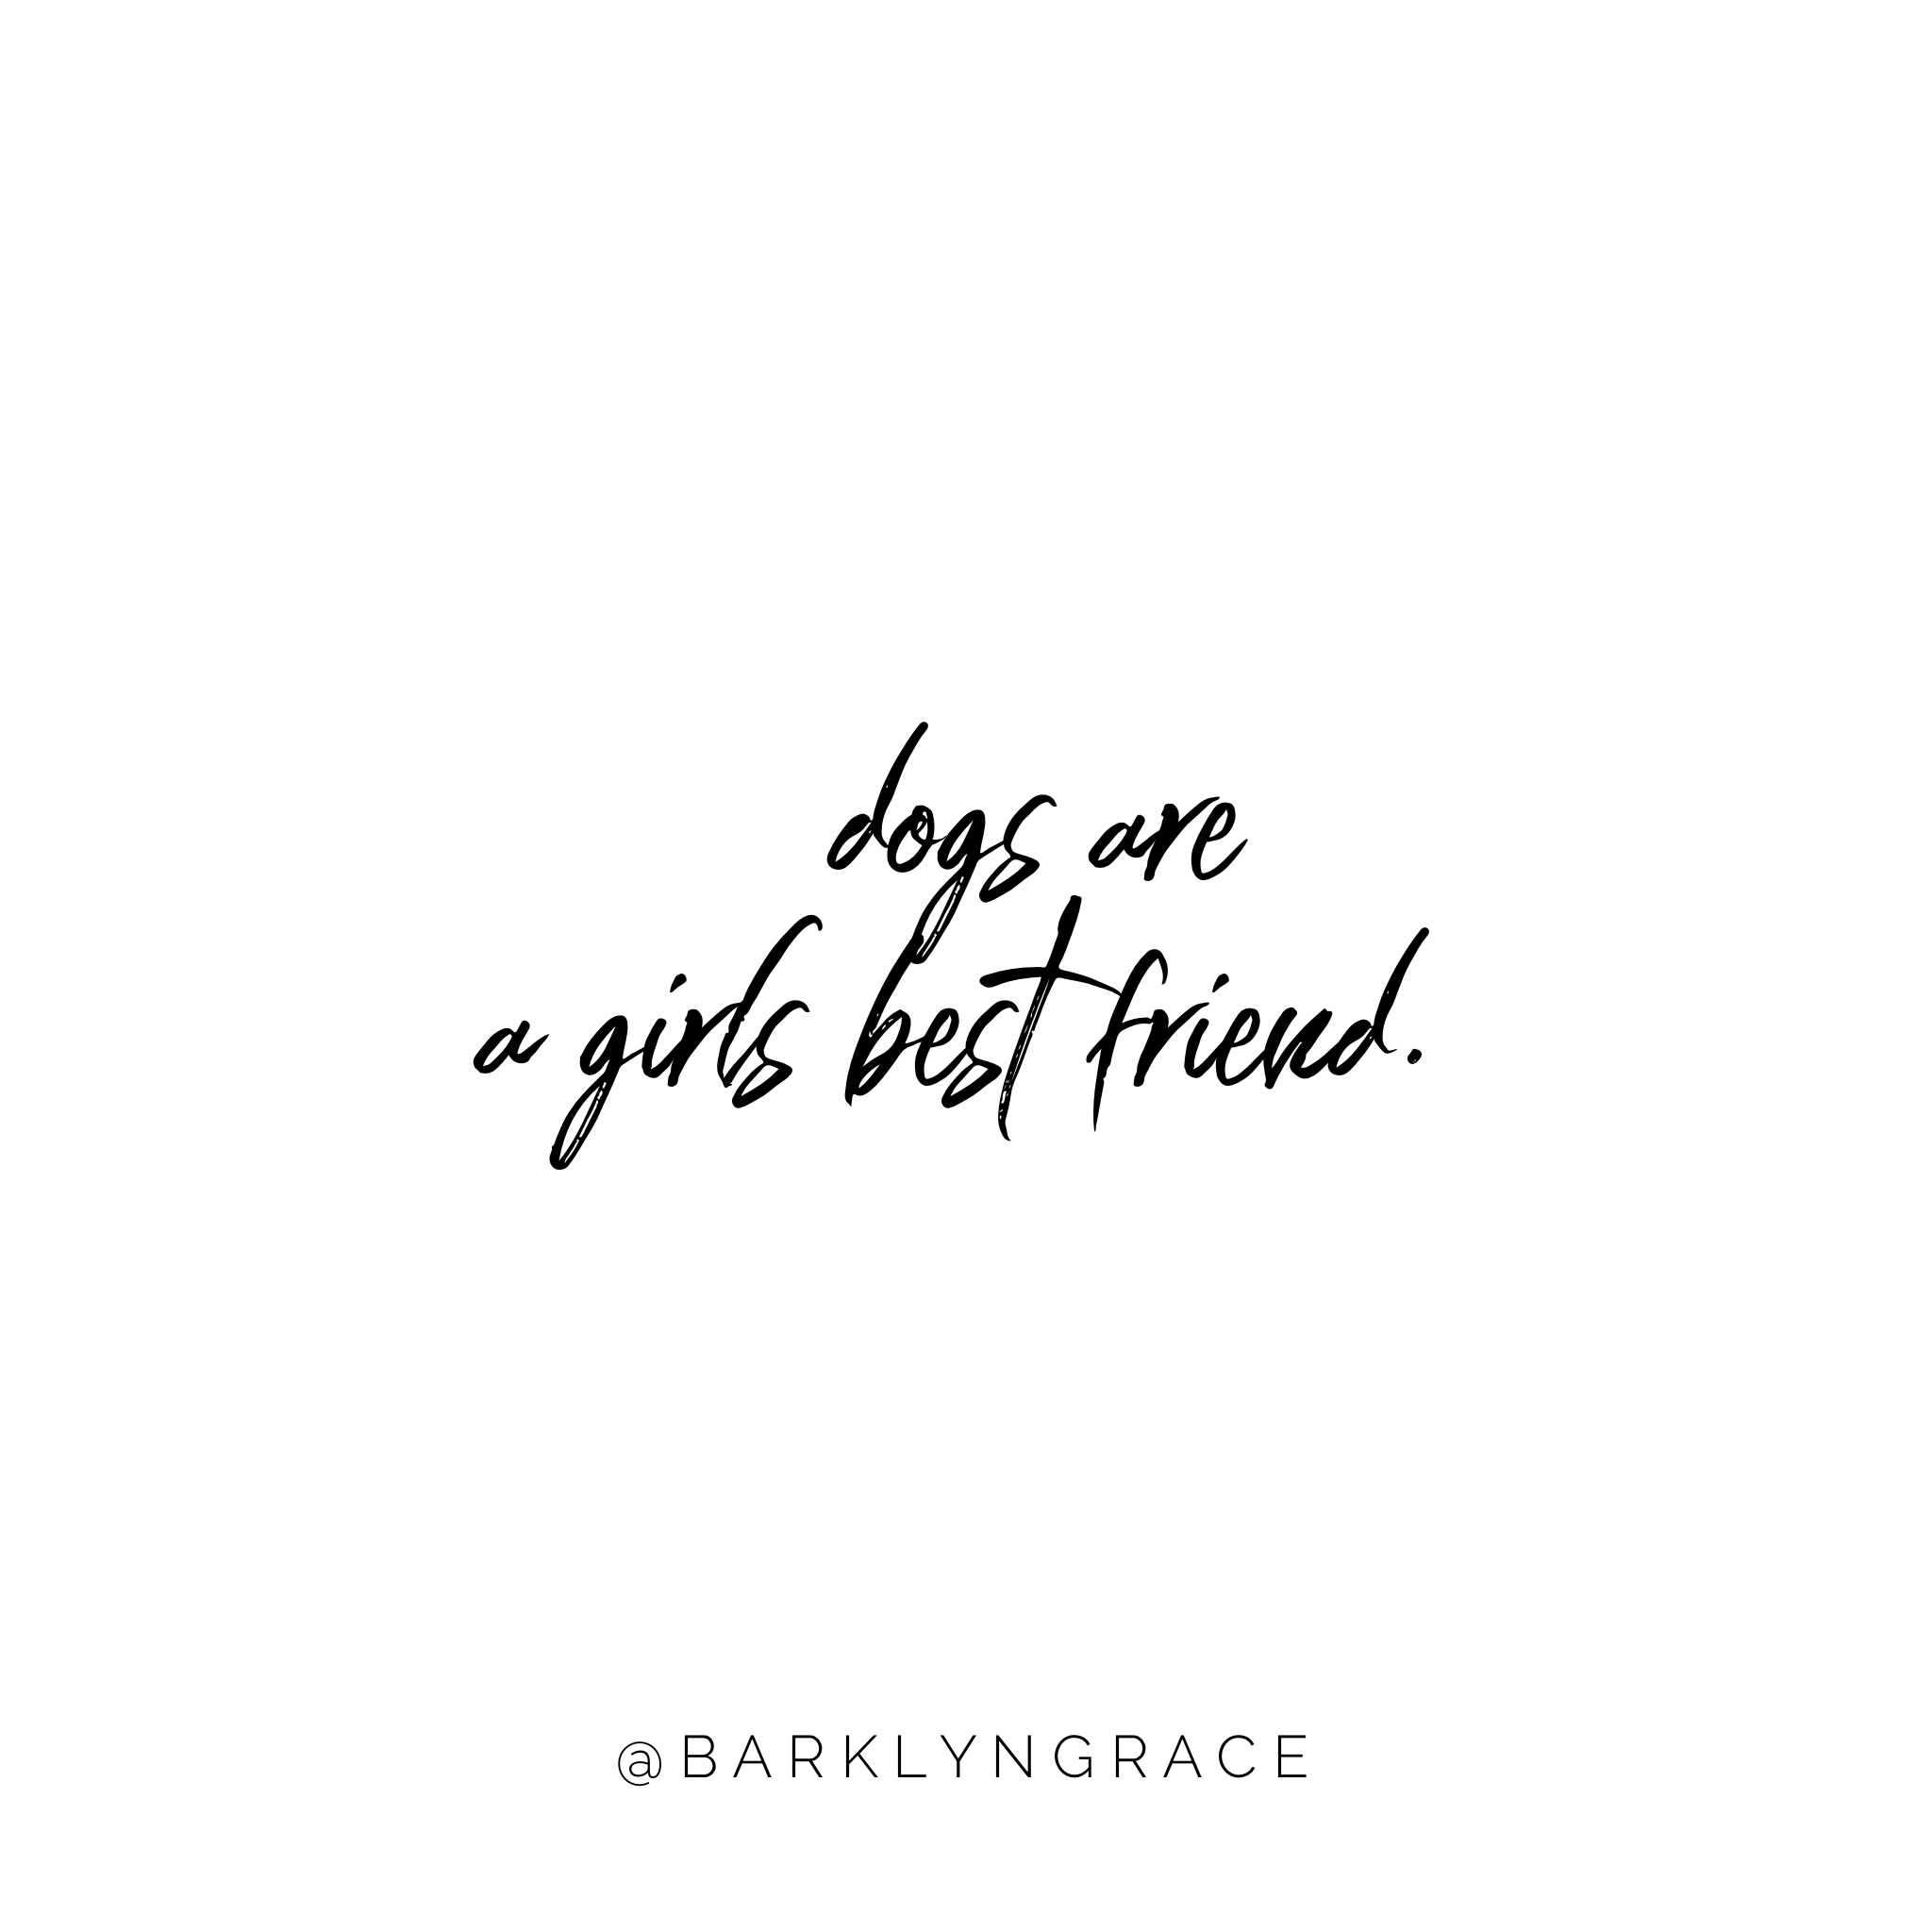 Barklyn Dogs Dogs Aesthetic Dogs And Puppies Dogs Quotes Grace Pups Save Puppy Quotes Dog Mom Quotes Dog Quotes Funny